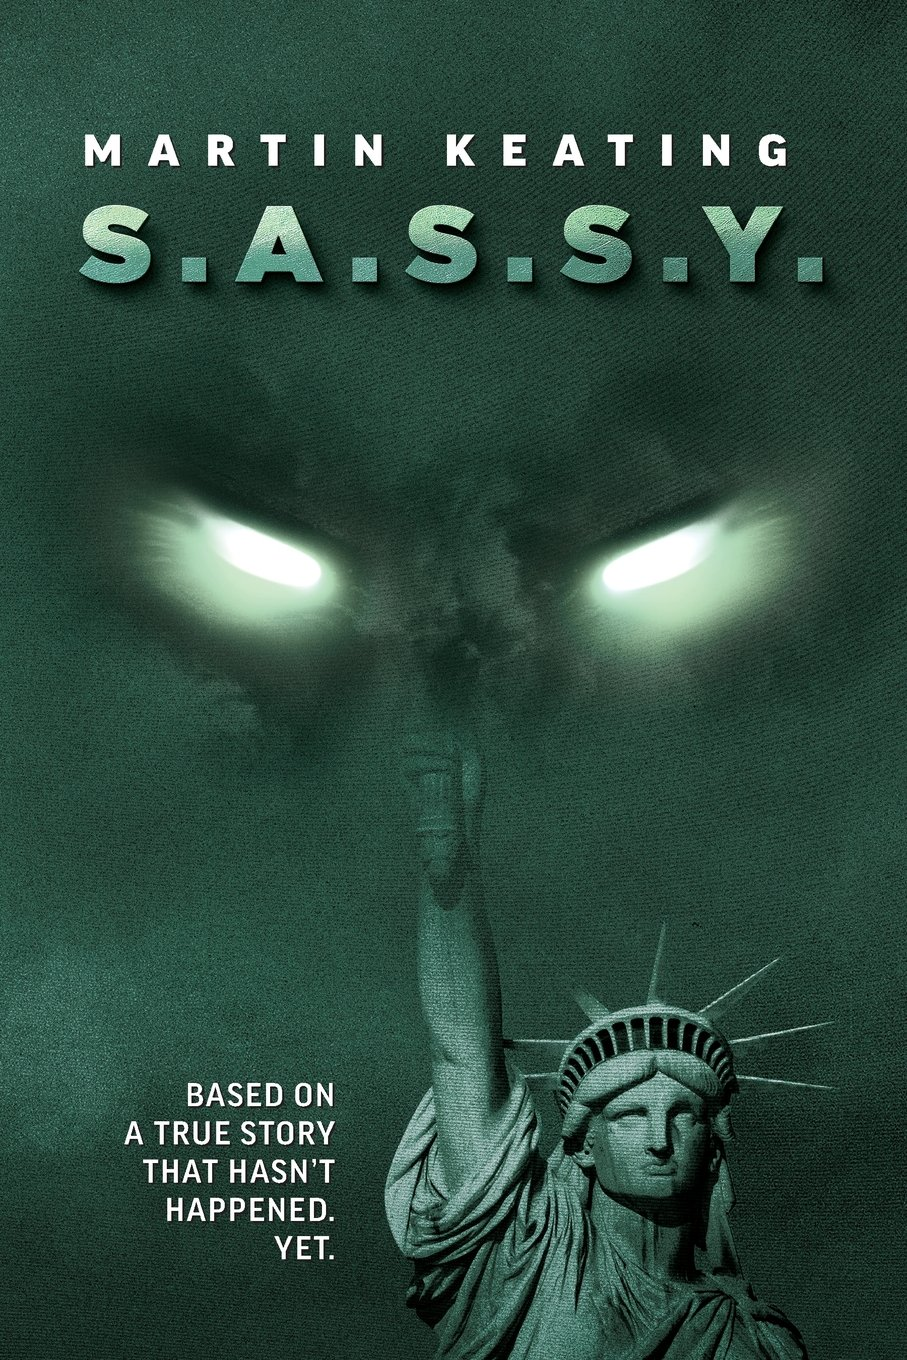 Download S.A.S.S.Y.: Based on a true story that hasn't happened. Yet. pdf epub